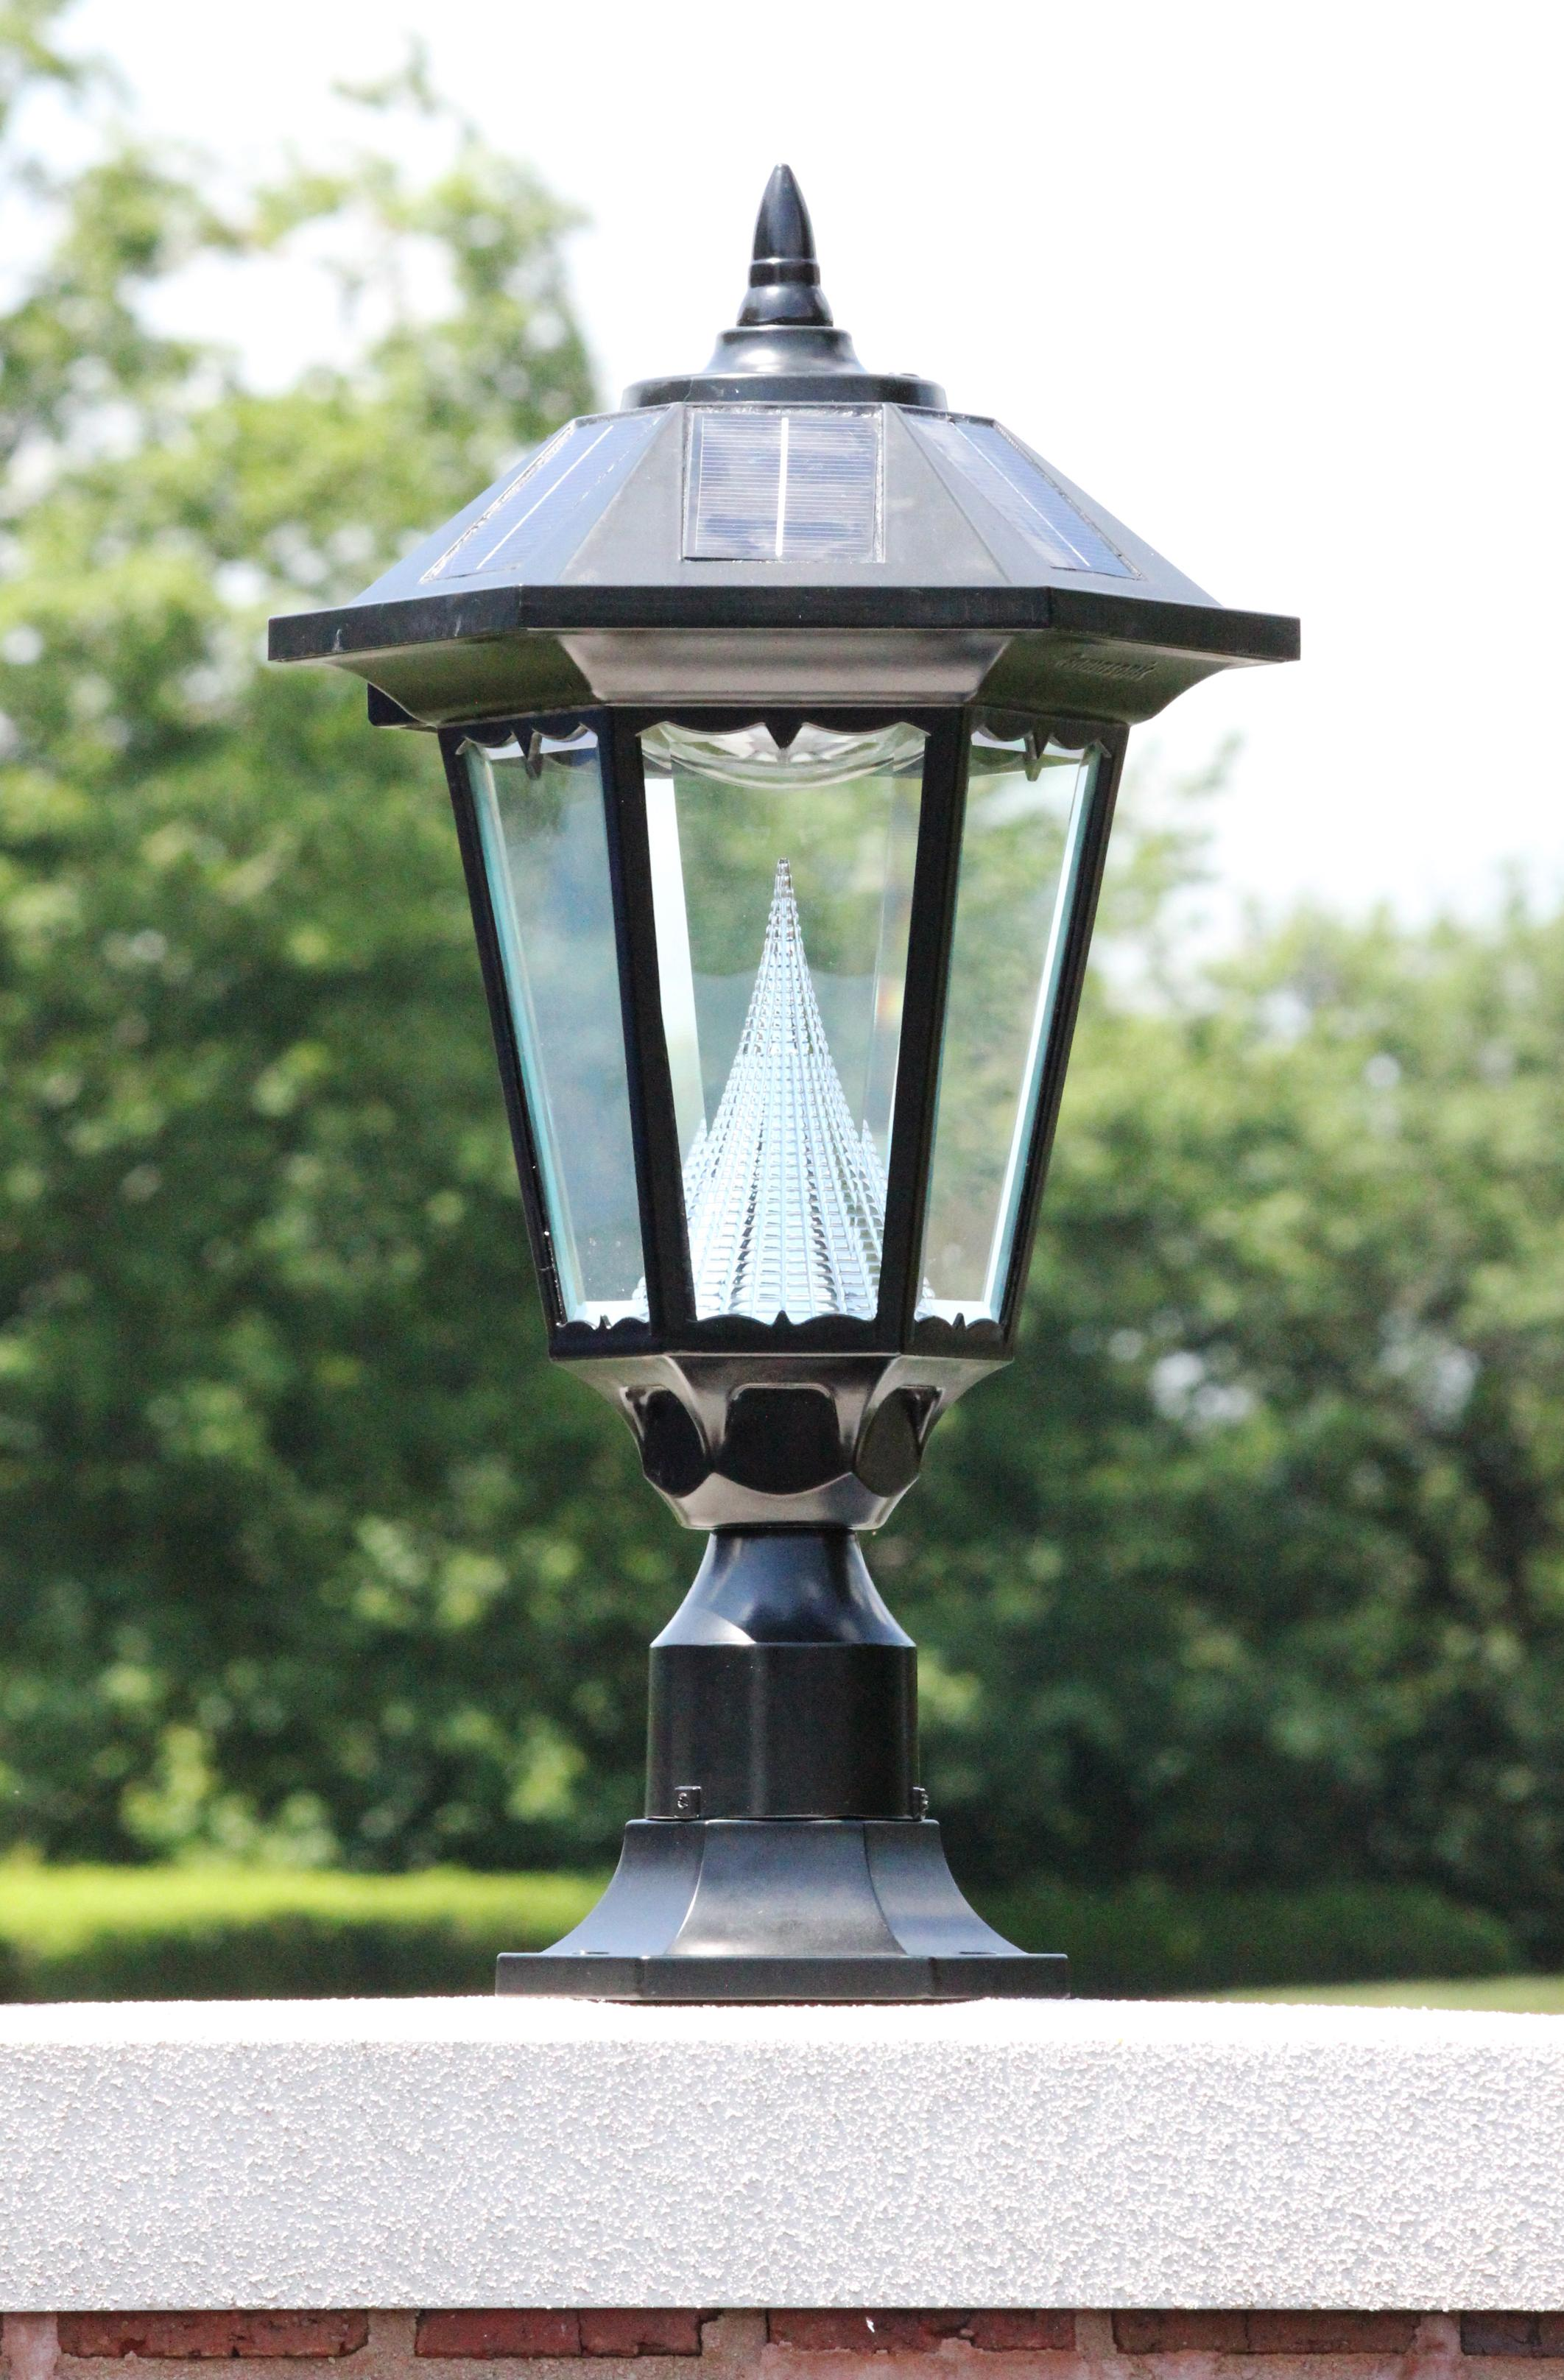 Marvelous Gama Sonic Windsor Outdoor Solar Light GS 99F On Its Pier Mount Outside